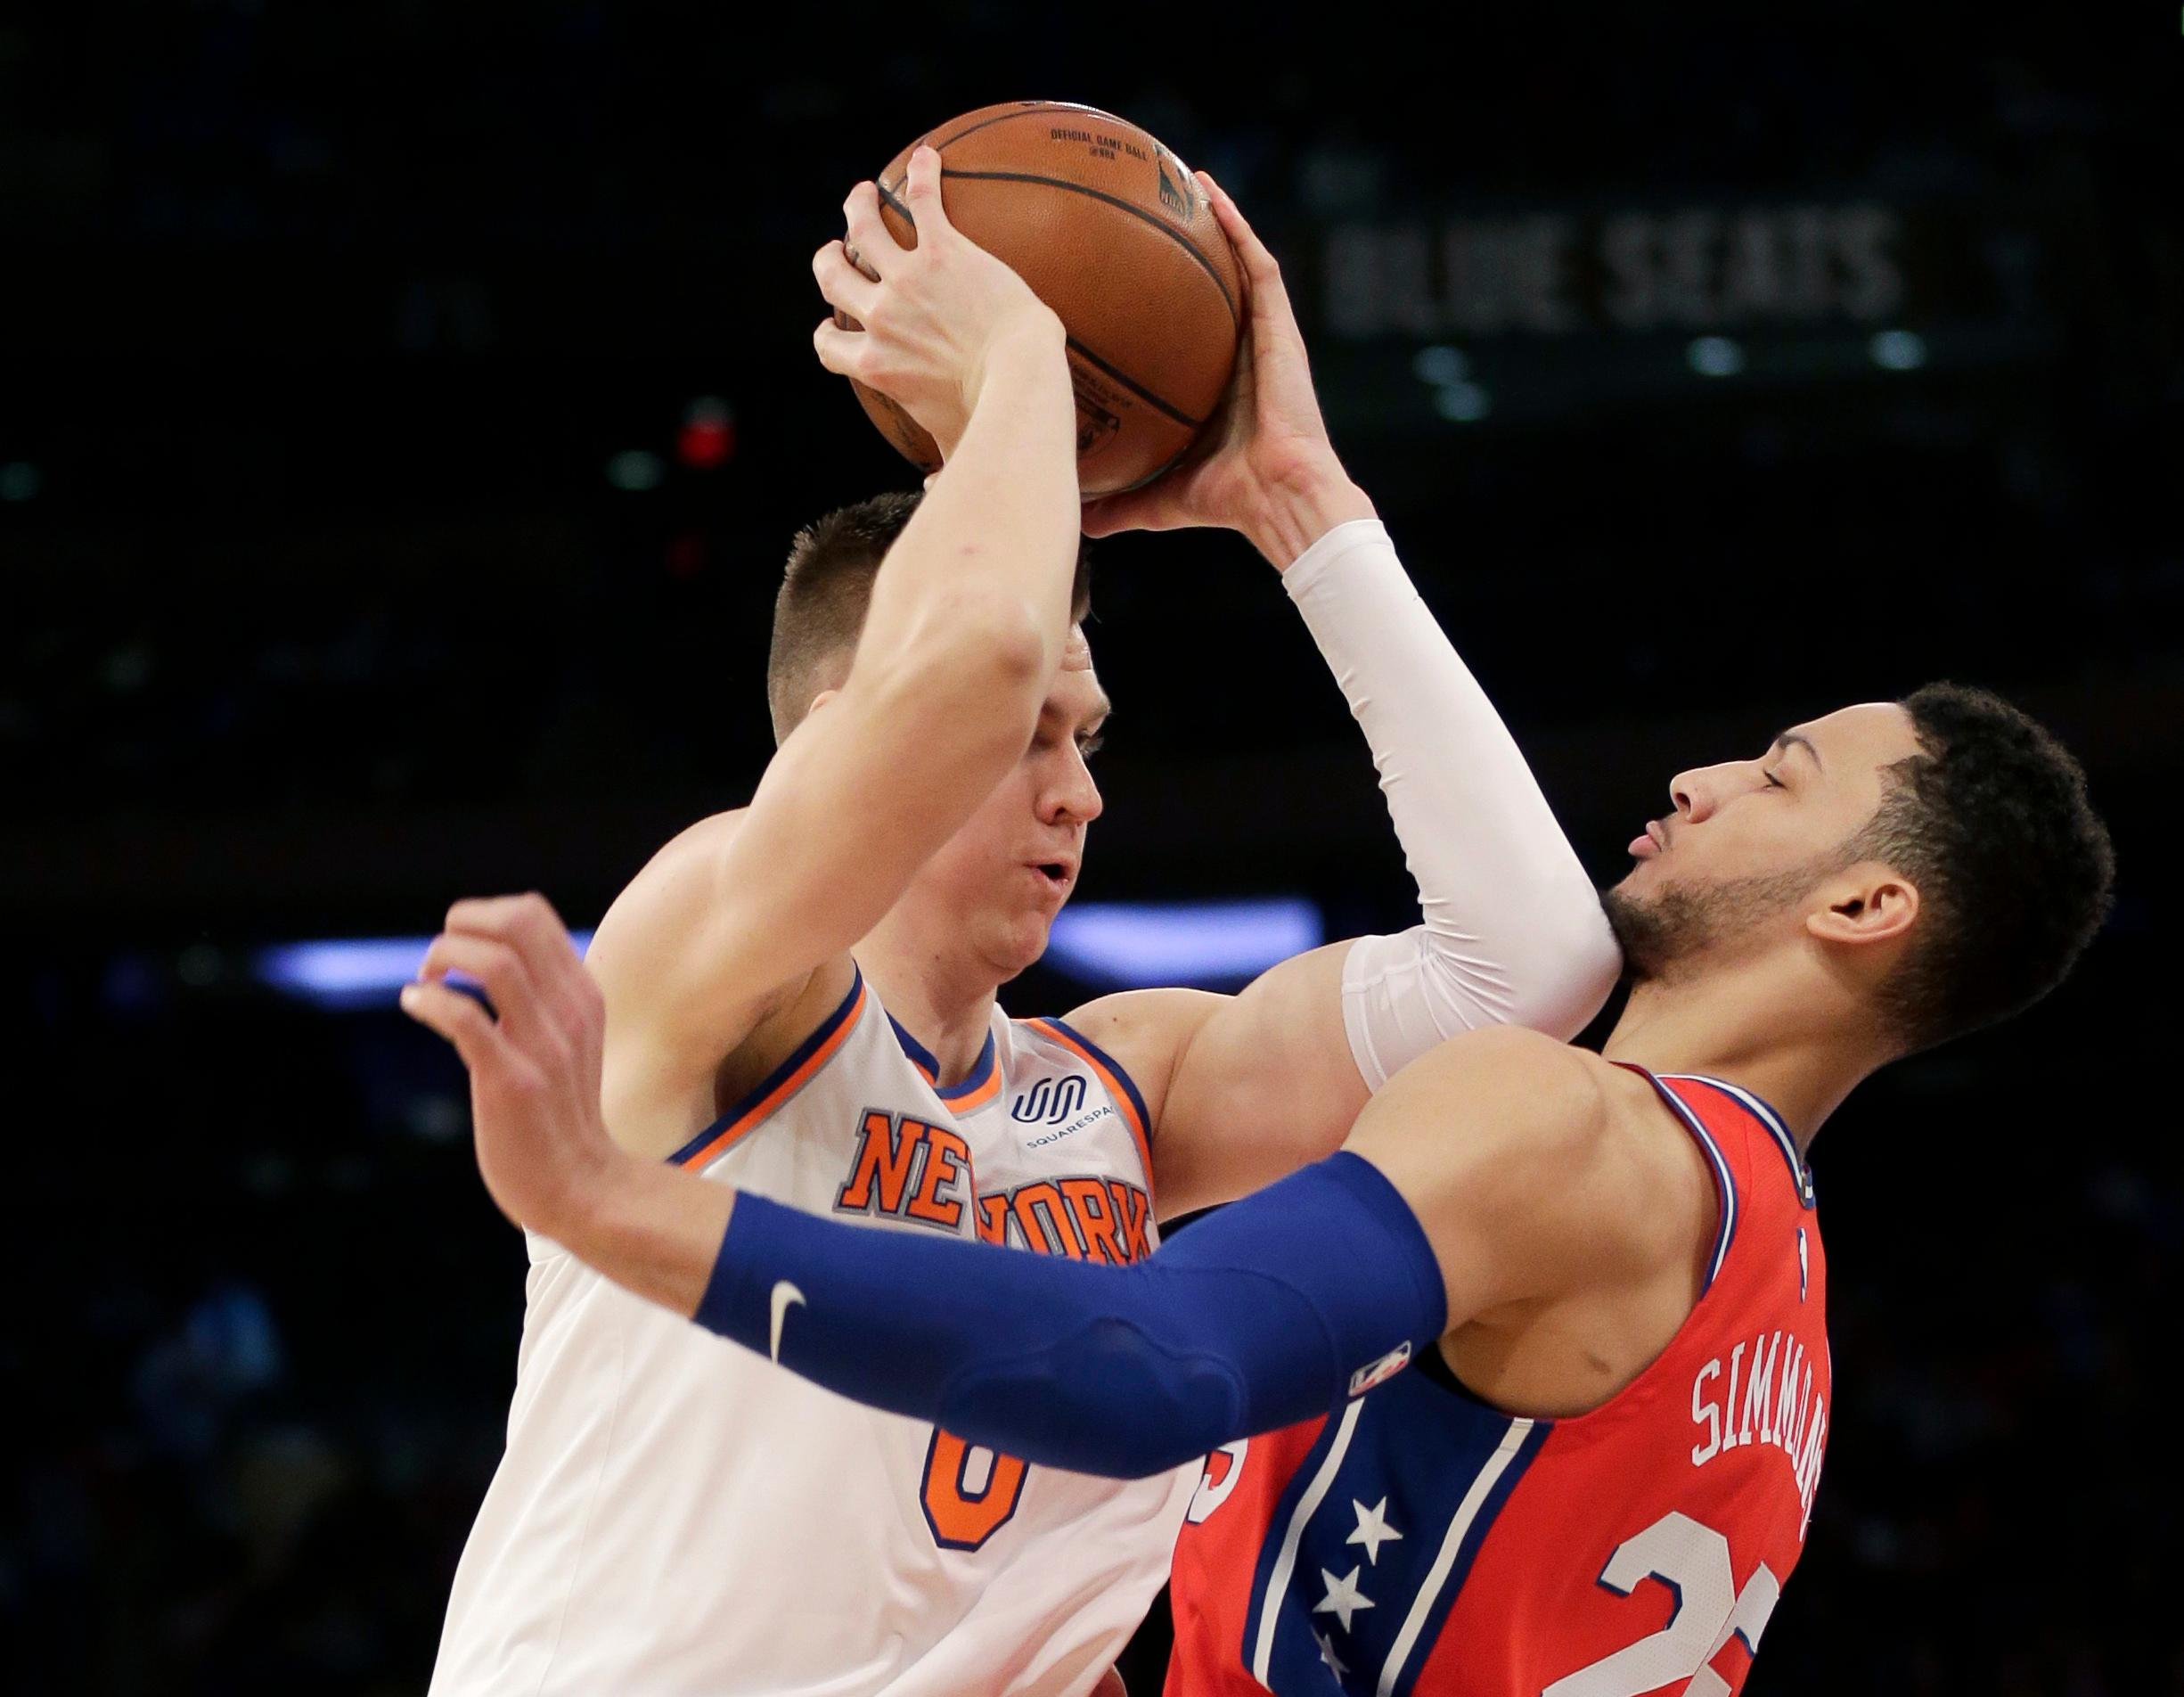 New York Knicks' Kristaps Porzingis, left, tries to move past Philadelphia 76ers' Ben Simmons during the first half of the NBA basketball game, Monday, Dec. 25, 2017, in New York. (AP Photo/Seth Wenig)